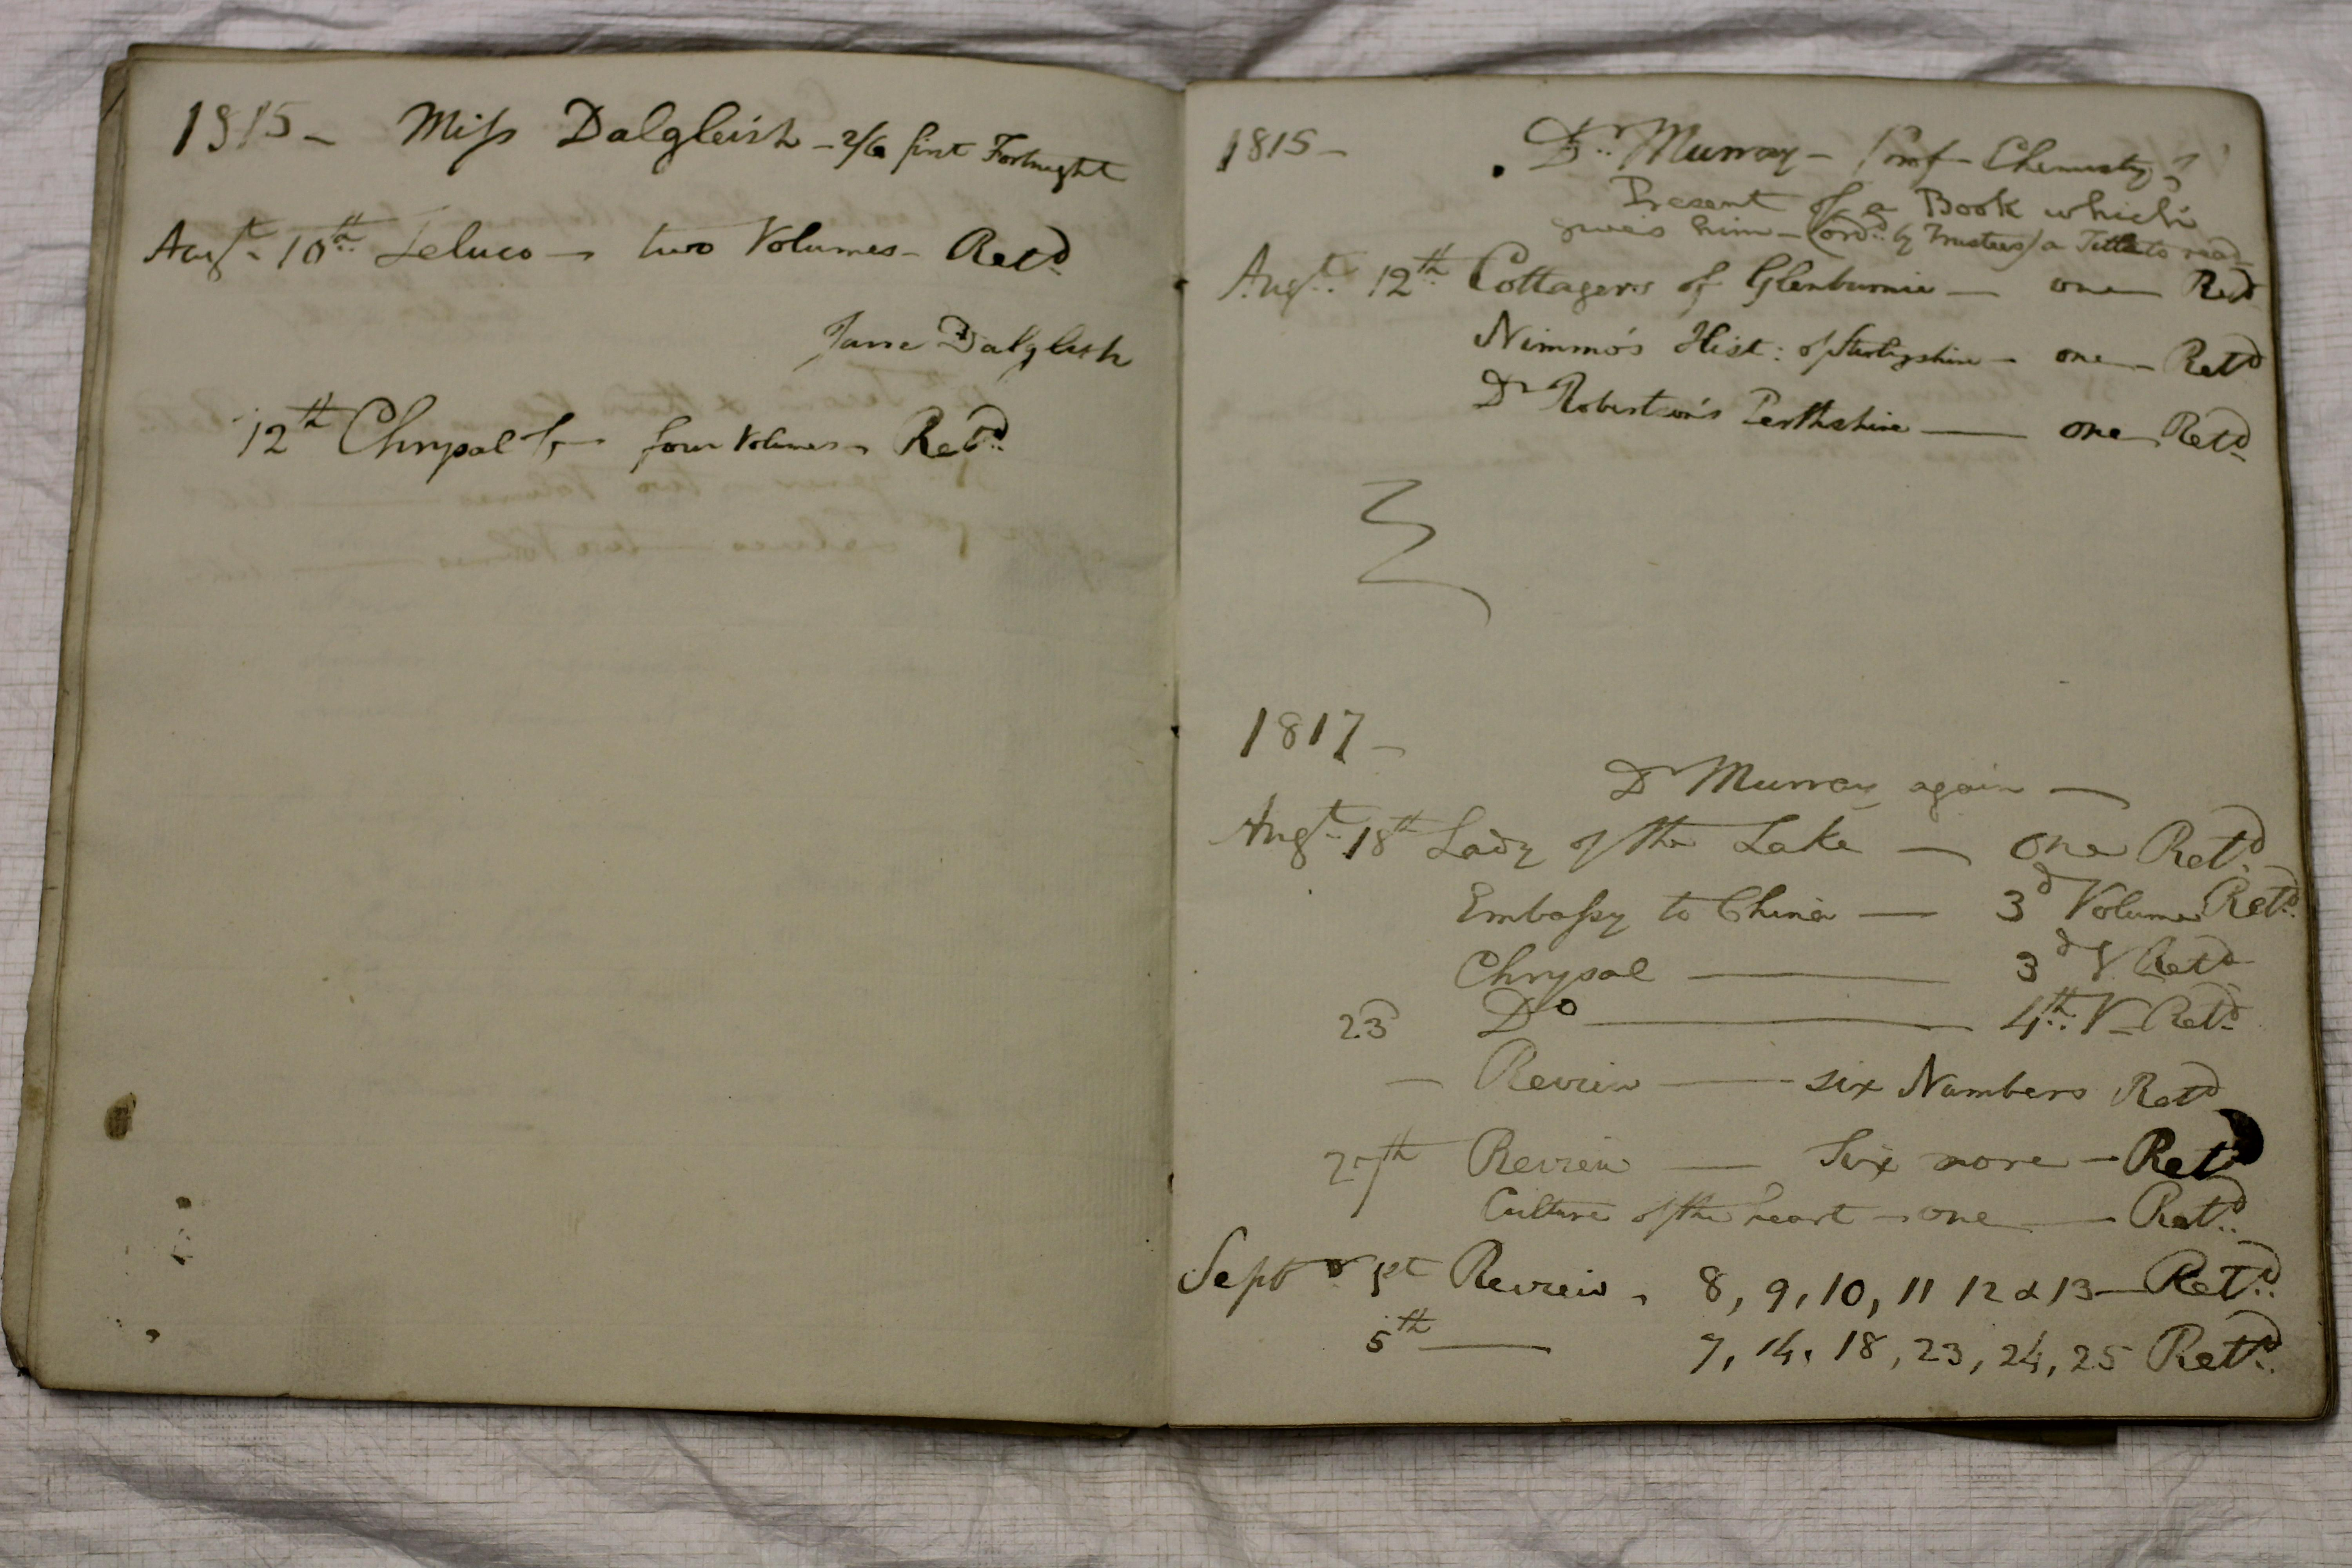 Leighton Library Water Drinkers' Register, pp.5-6, showing Miss Dalgleish's borrowing of Zeluco, and Dr Murray's of The Cottagers of Glenburnie, both in 1815